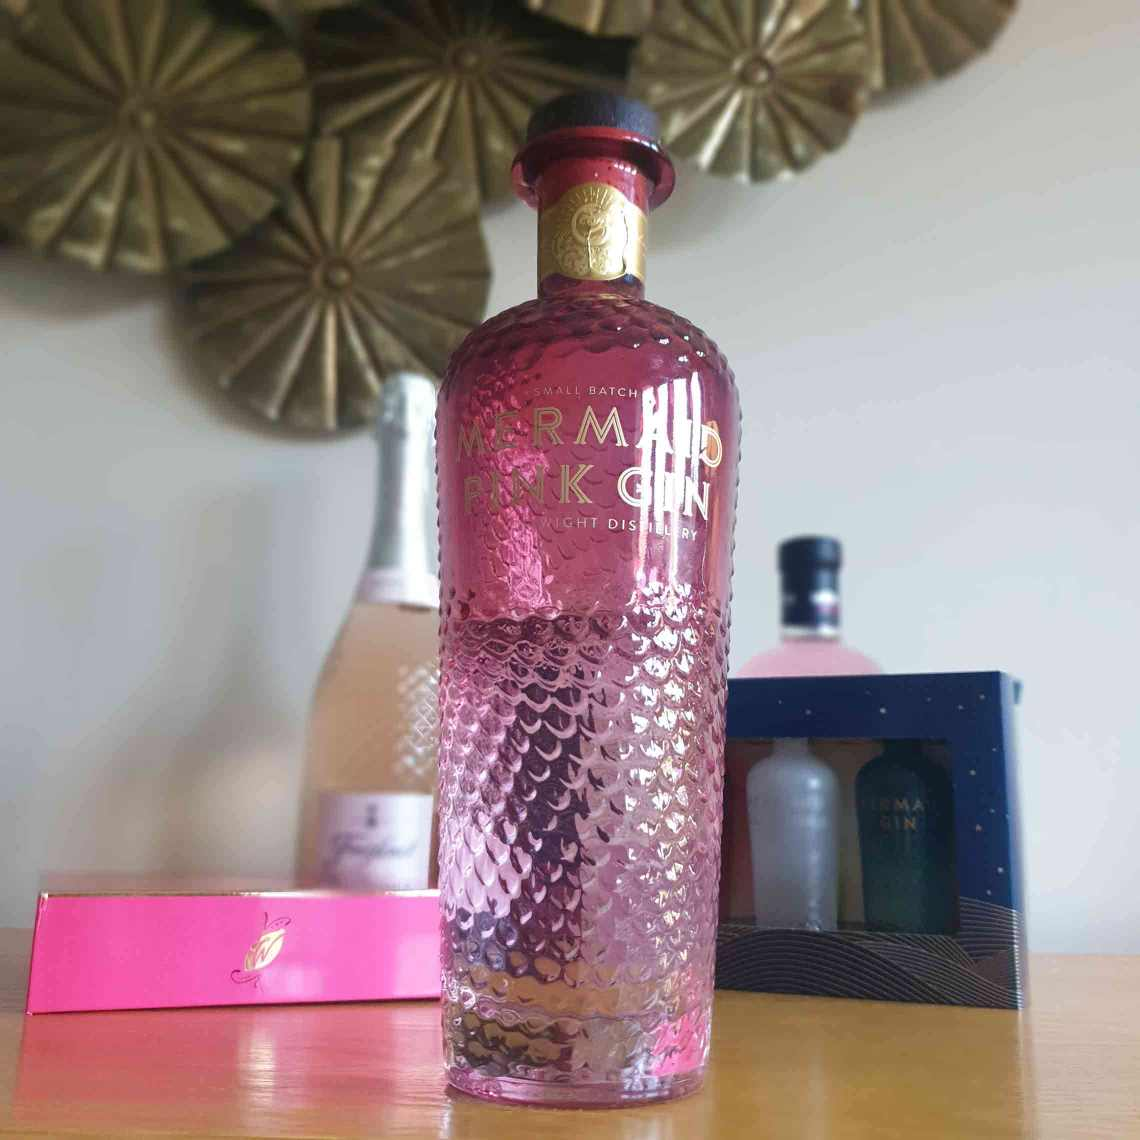 A bottle of Mermaid Pink Gin. The Best Foodie Mother's Day Gifts.